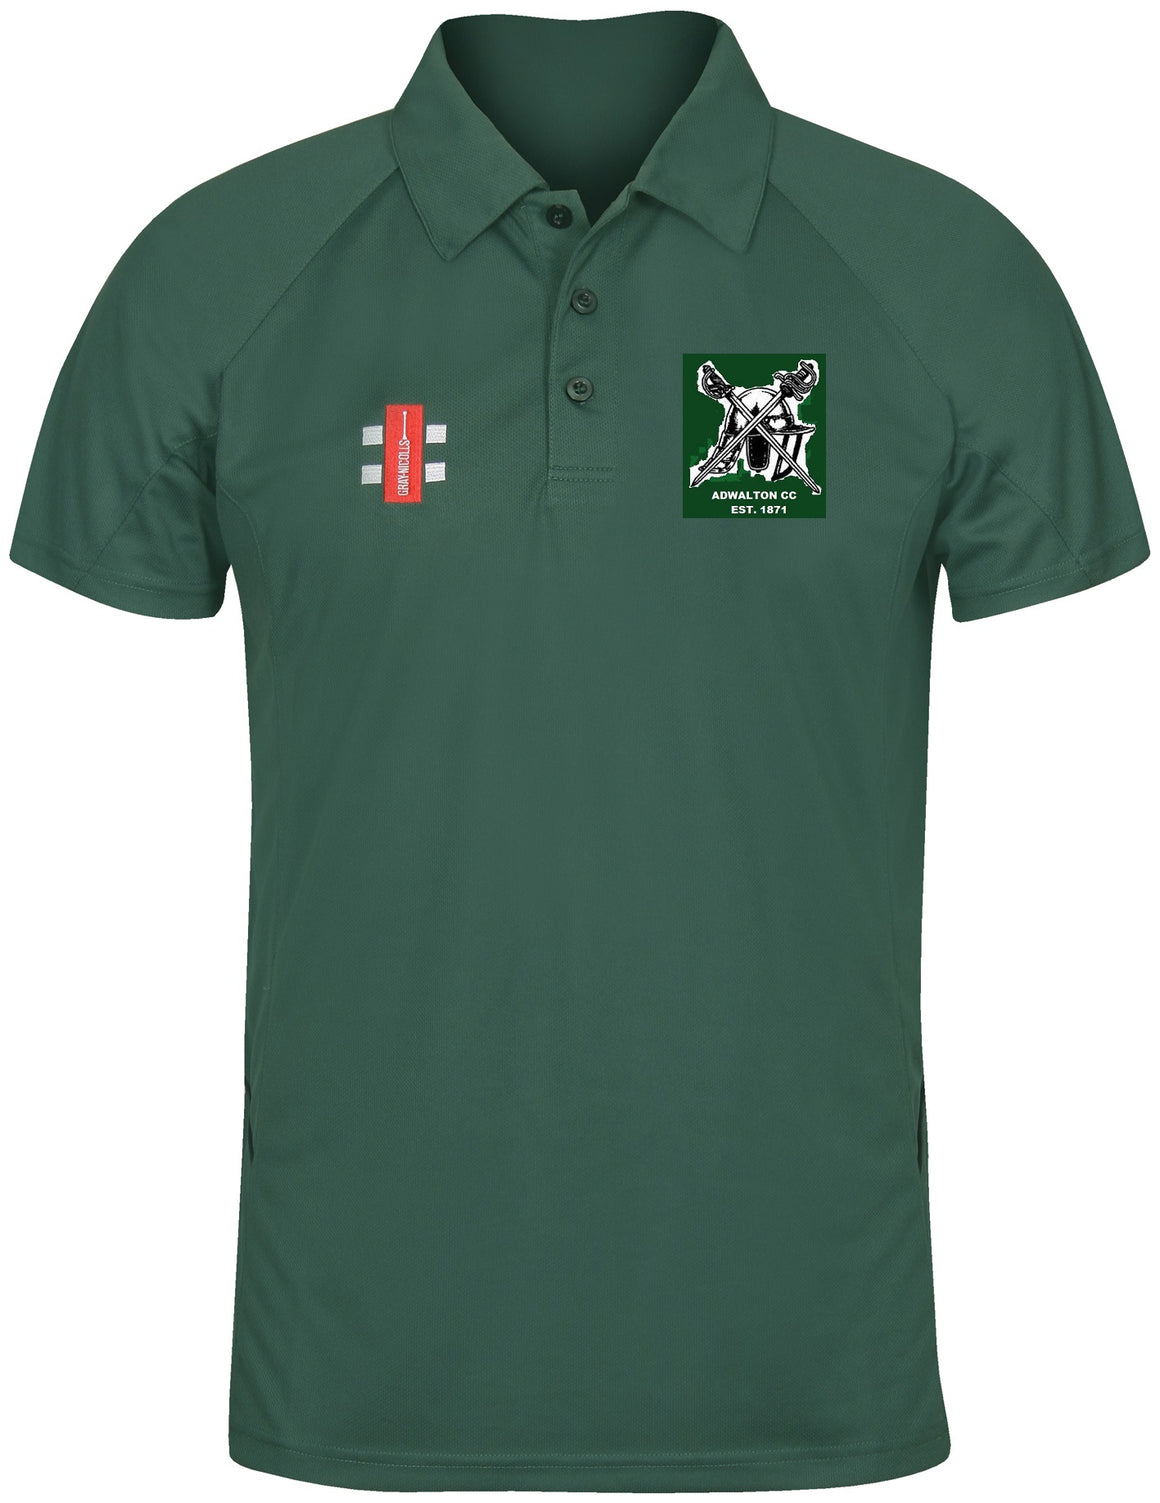 Adwalton CC Polo Shirt